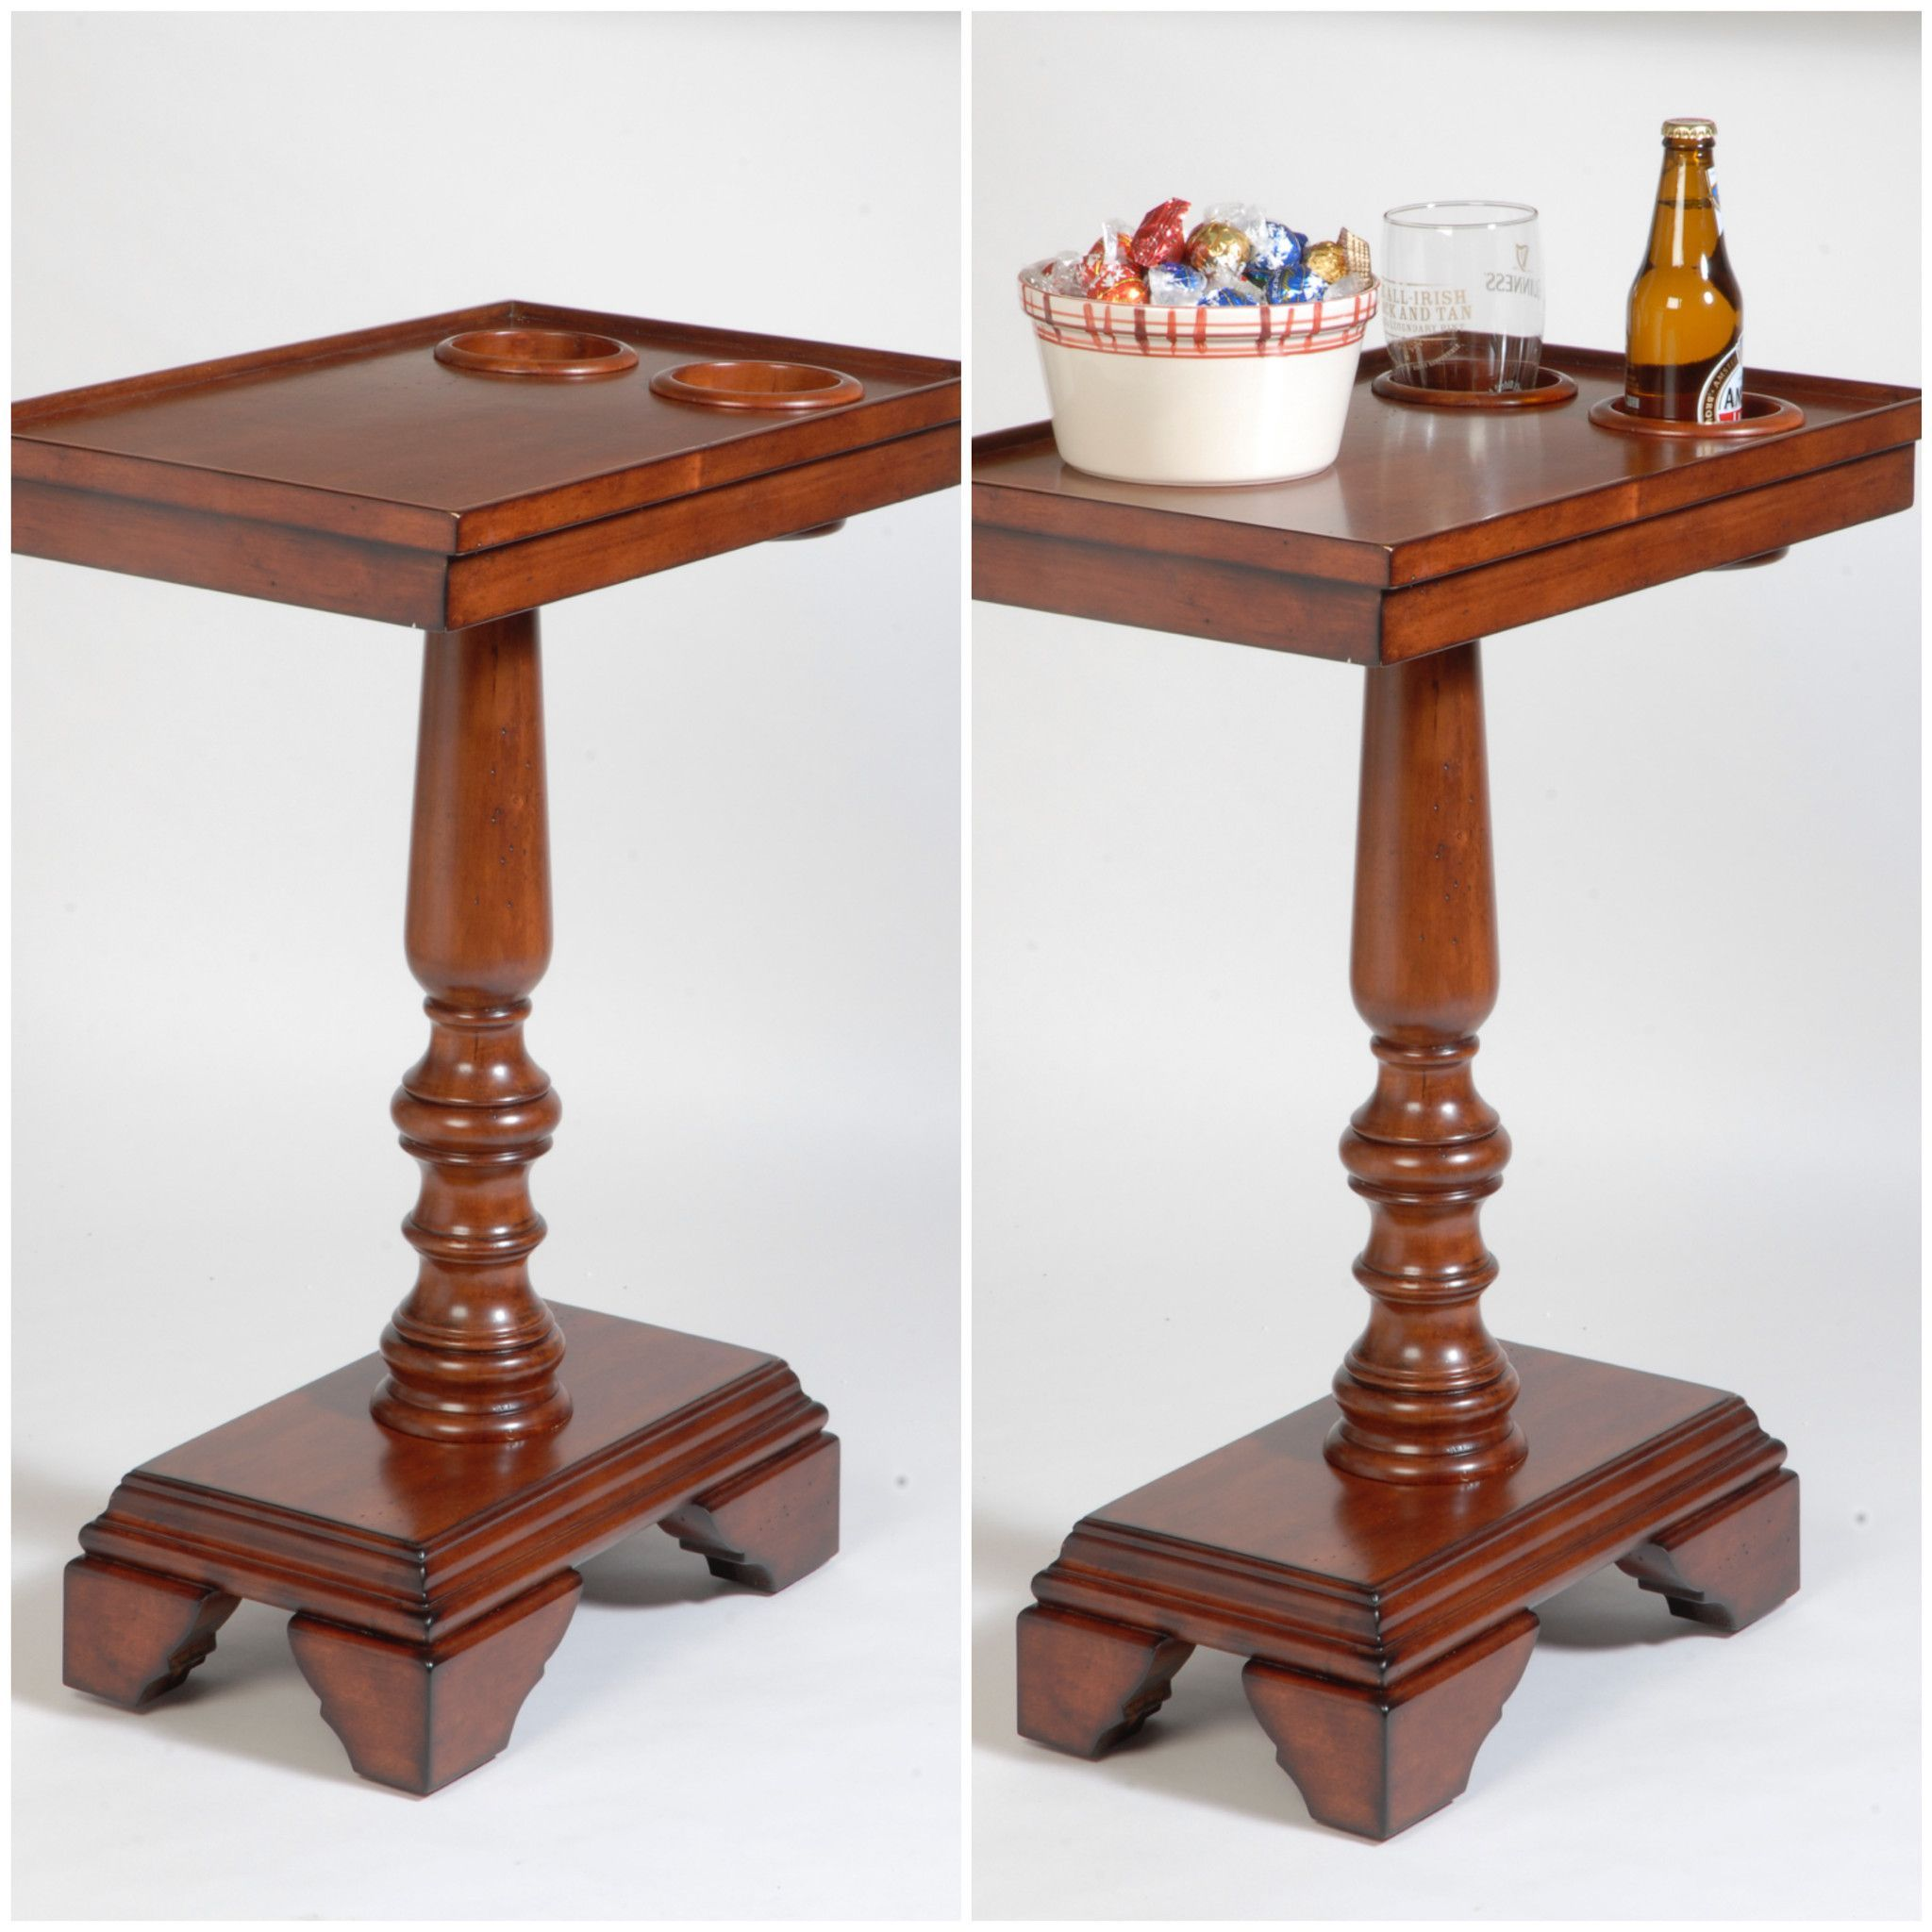 The Perfect End Table Side Or Home Theater With Built In Holders So You Spill Less And Drink More